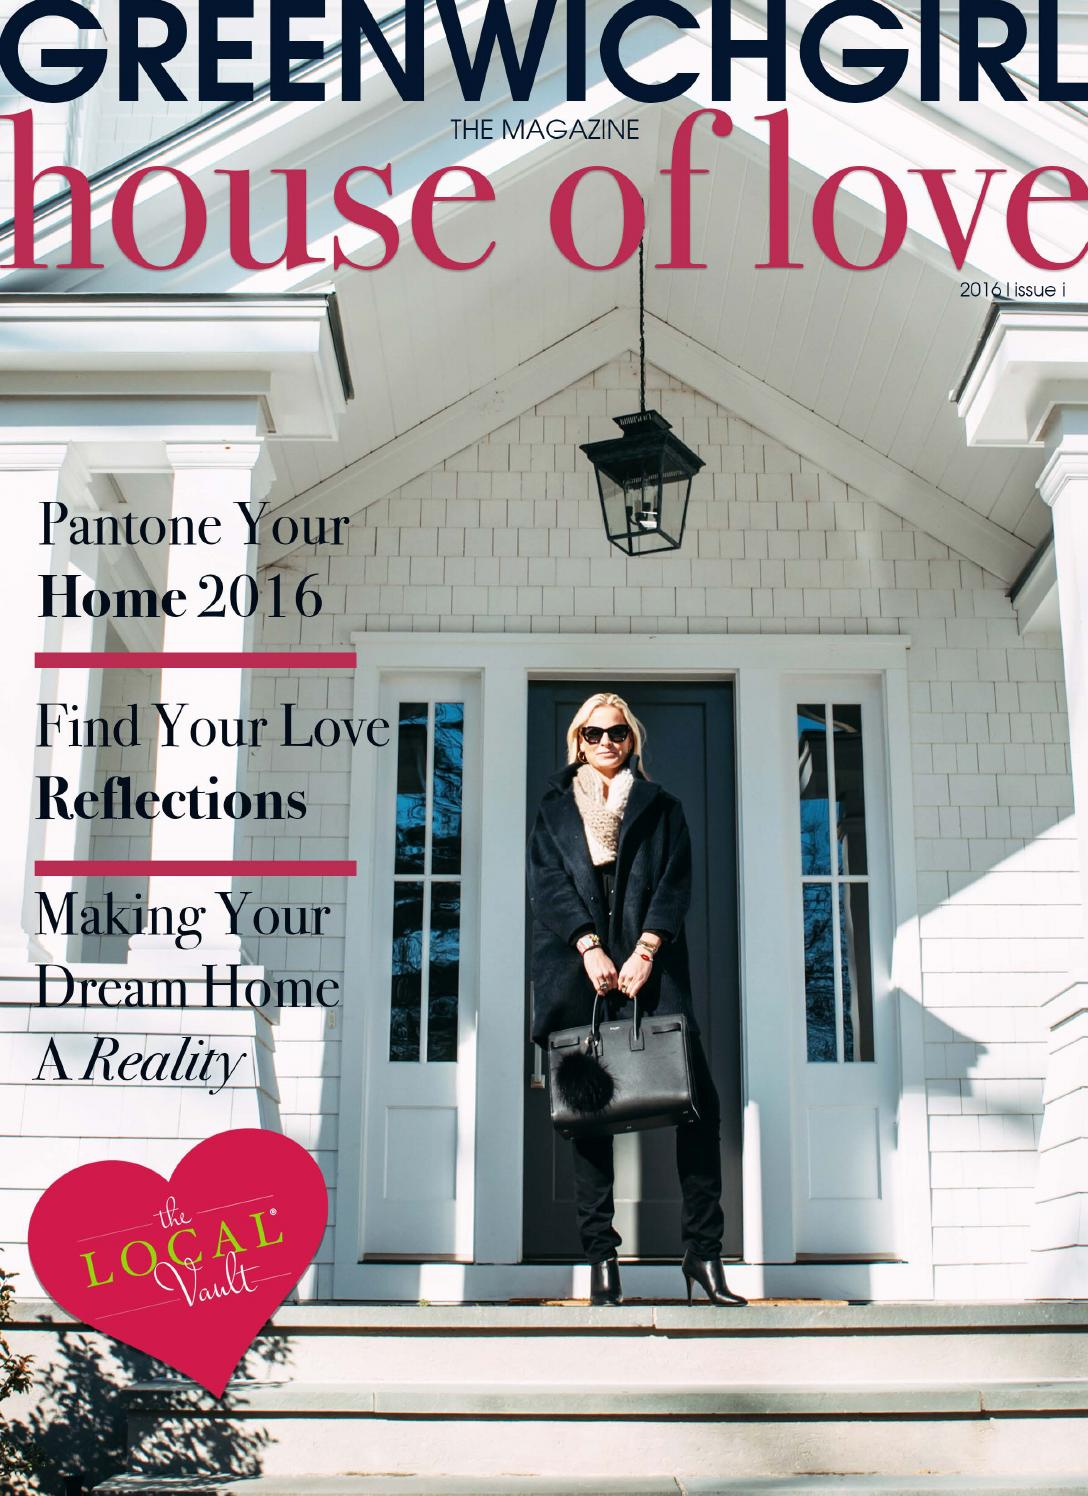 7245f3ecdecbb The greenwich girl magazine issue i 2016 house of love by The ...